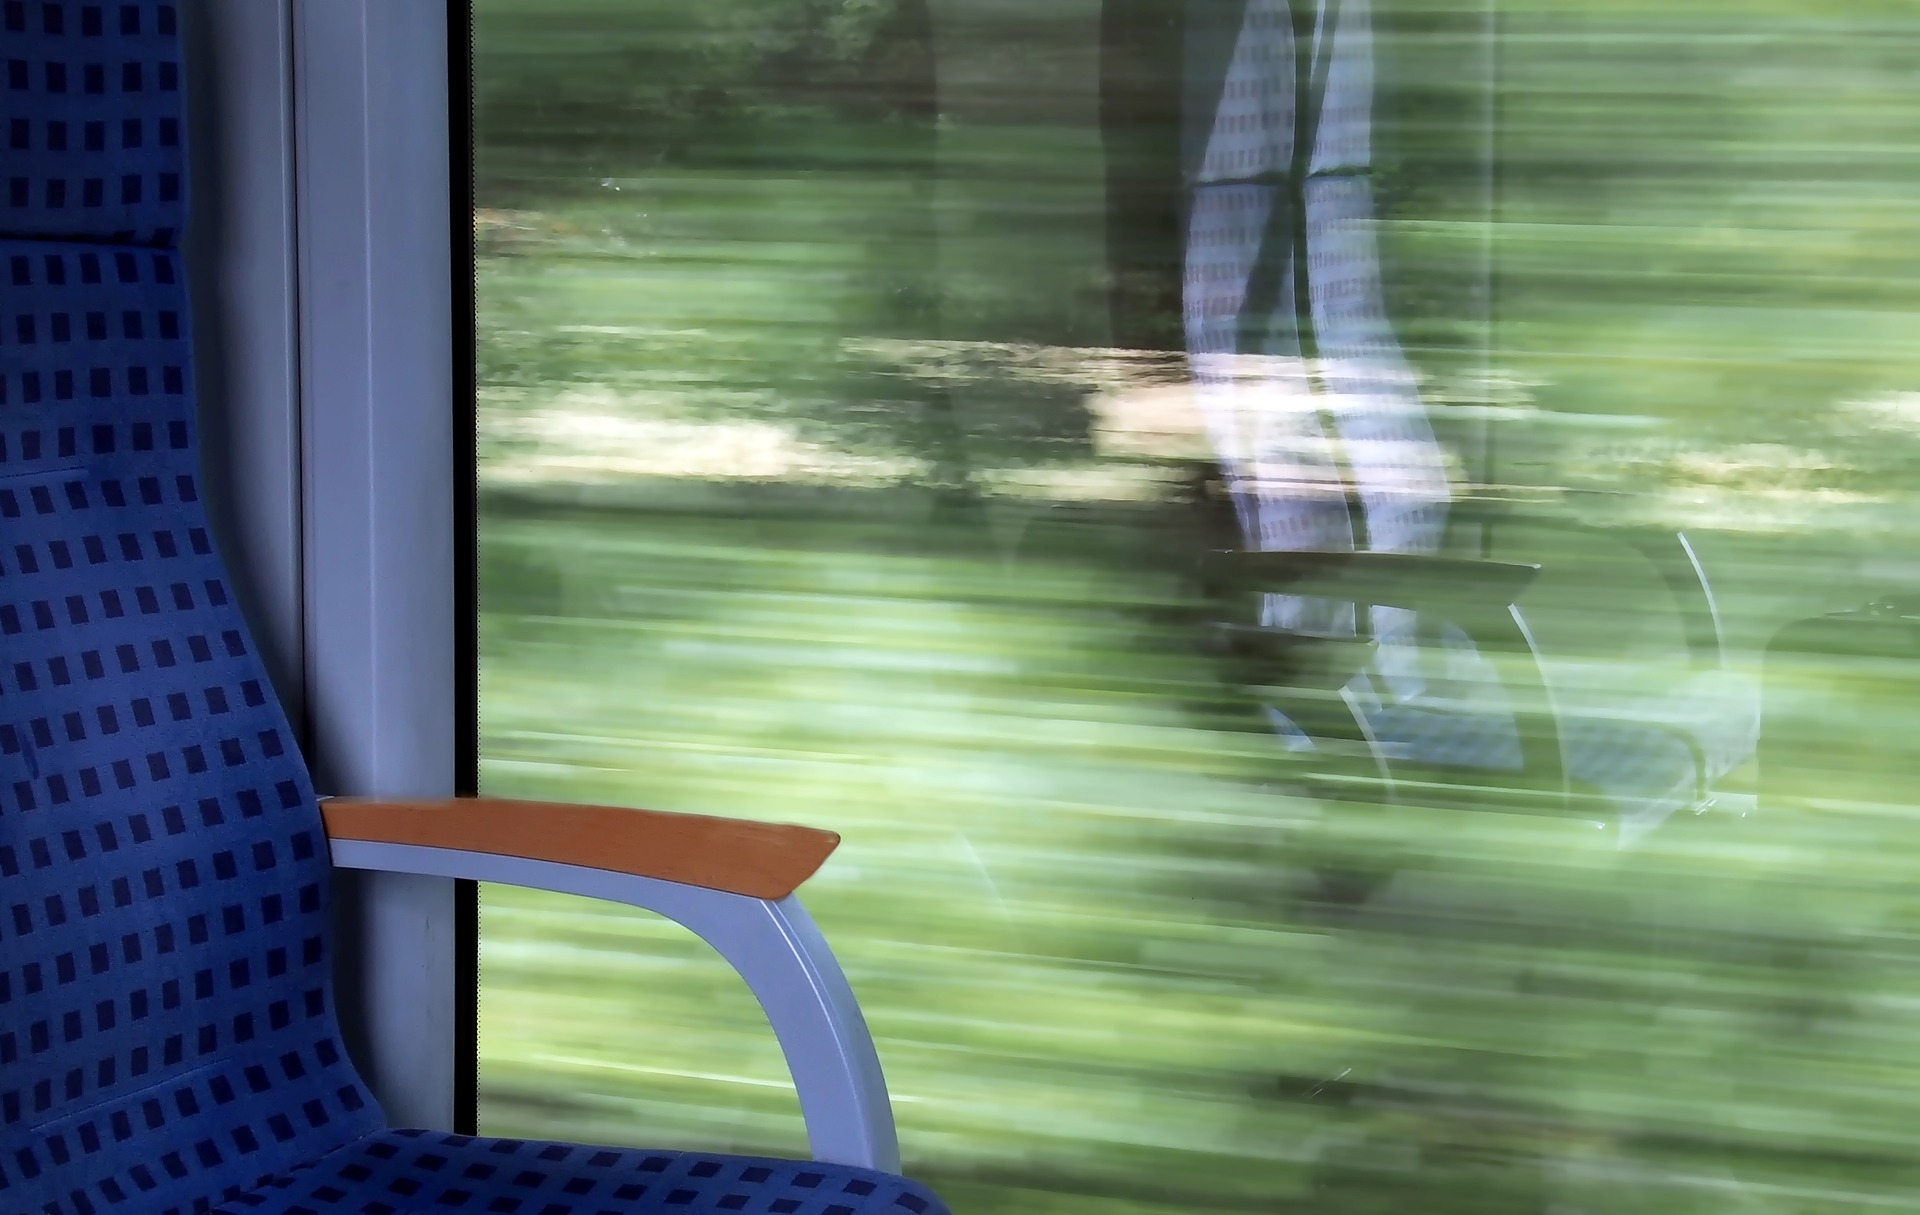 photo of train with blurry window as train is in motion